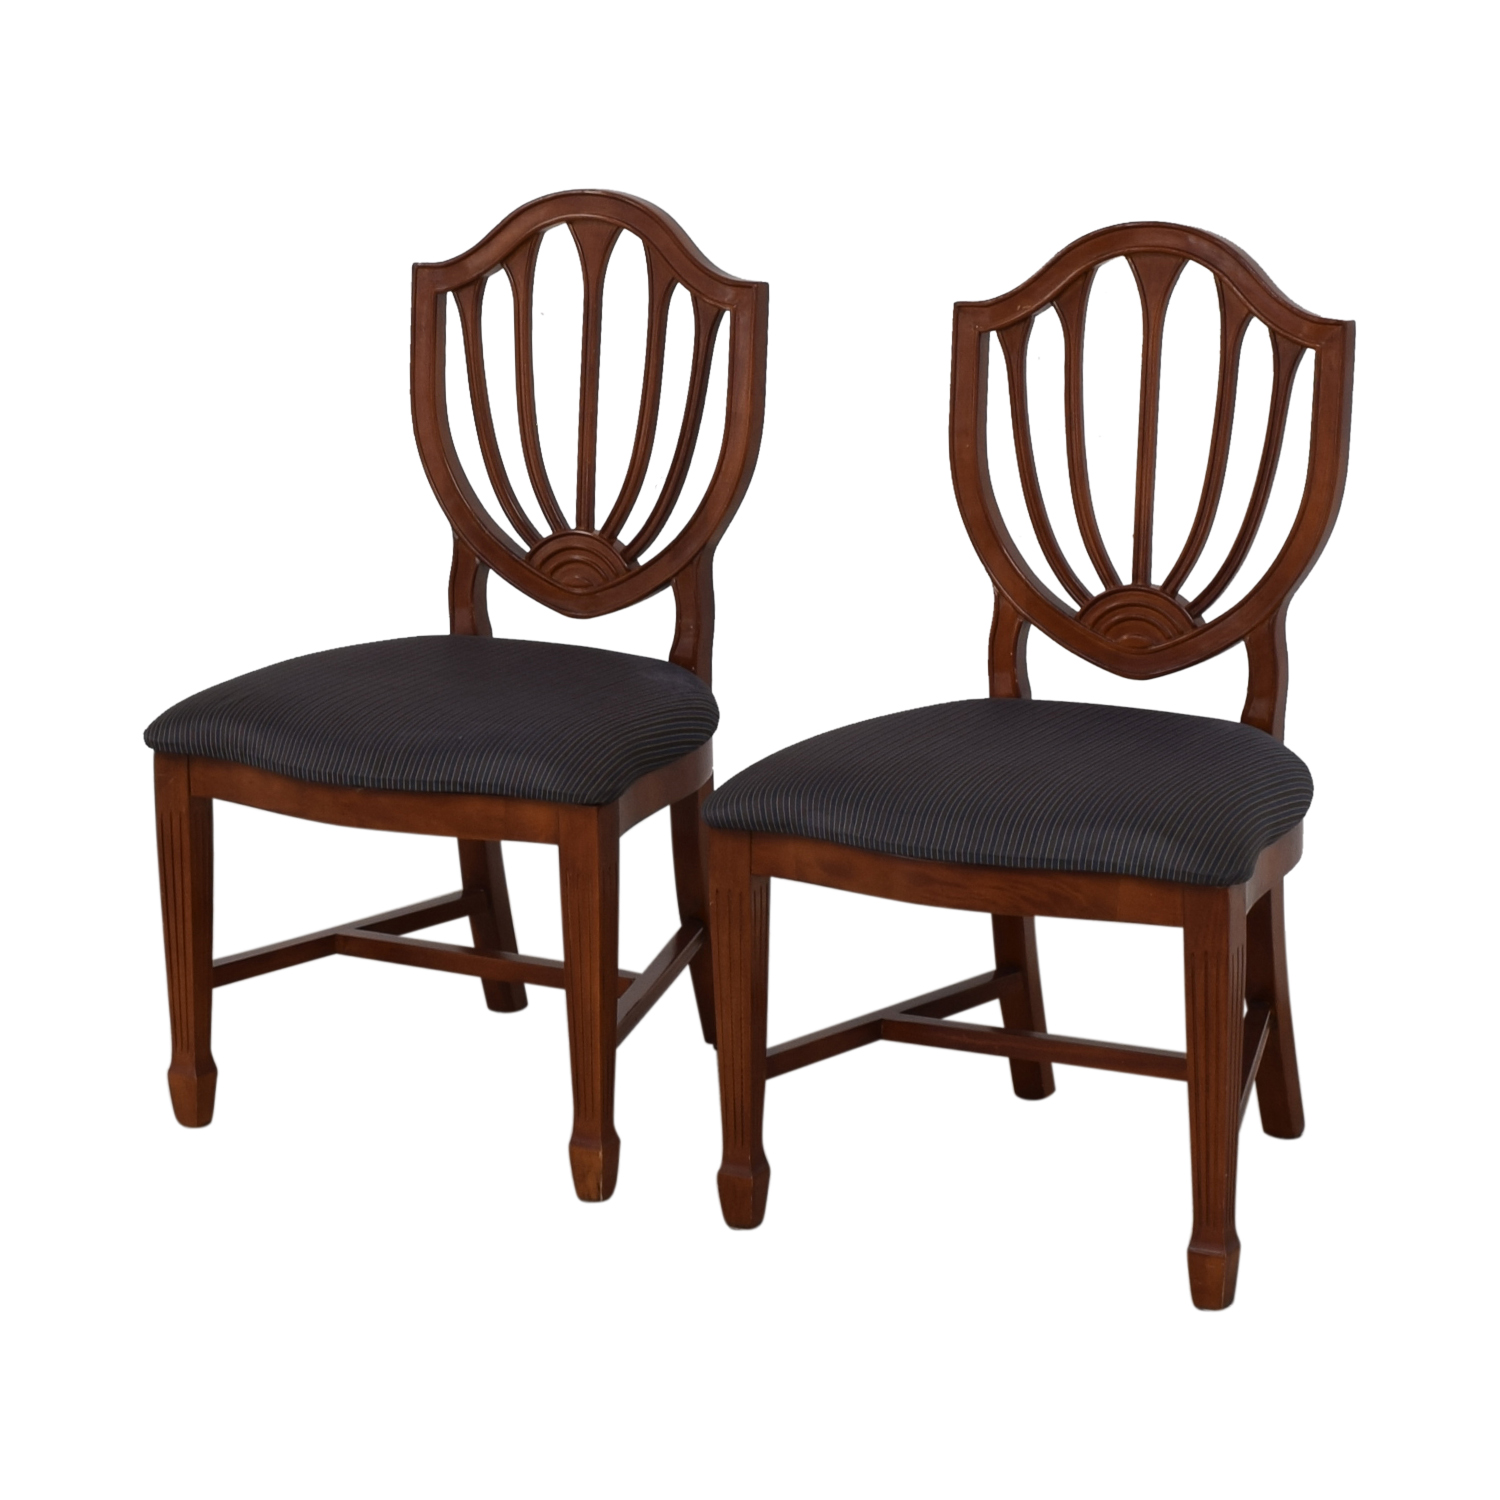 Blue Striped Upholstered Cherry Wood Accent Chairs second hand